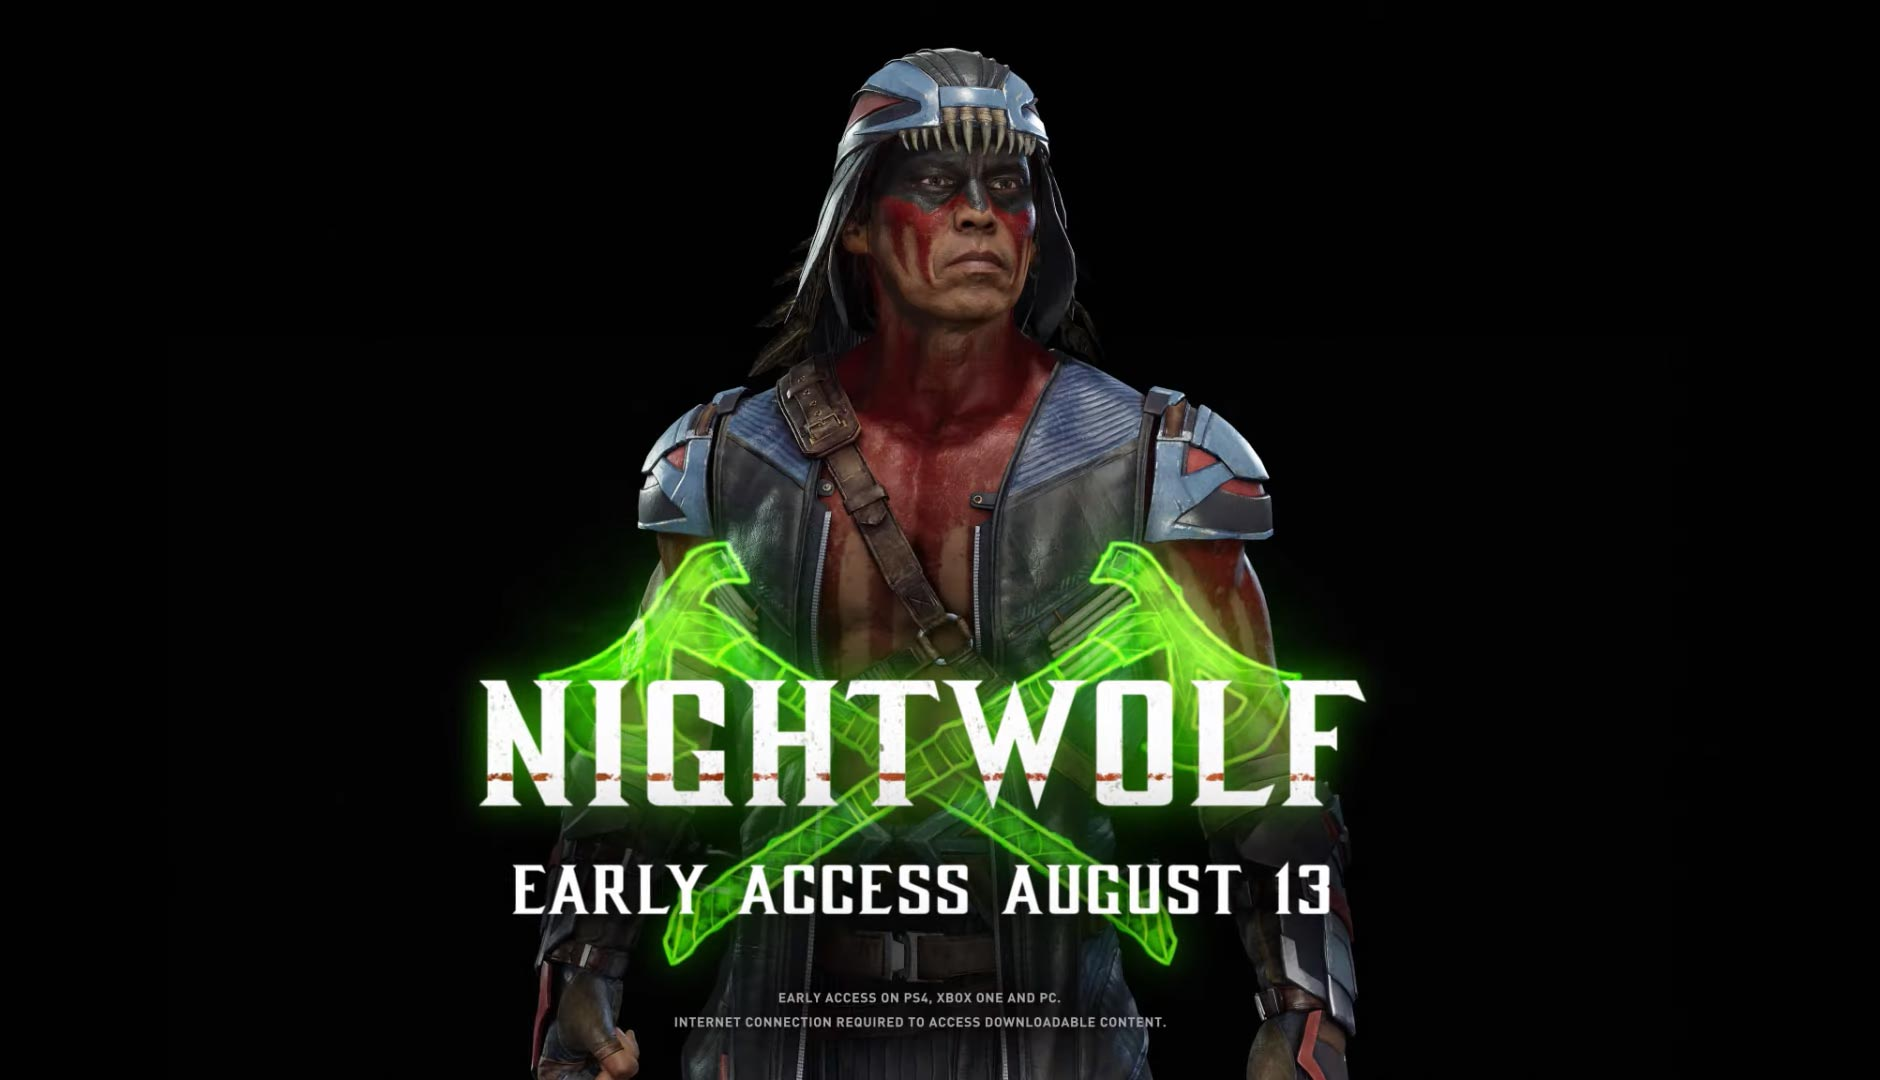 Nightwolf in Mortal Kombat 11 8 out of 9 image gallery